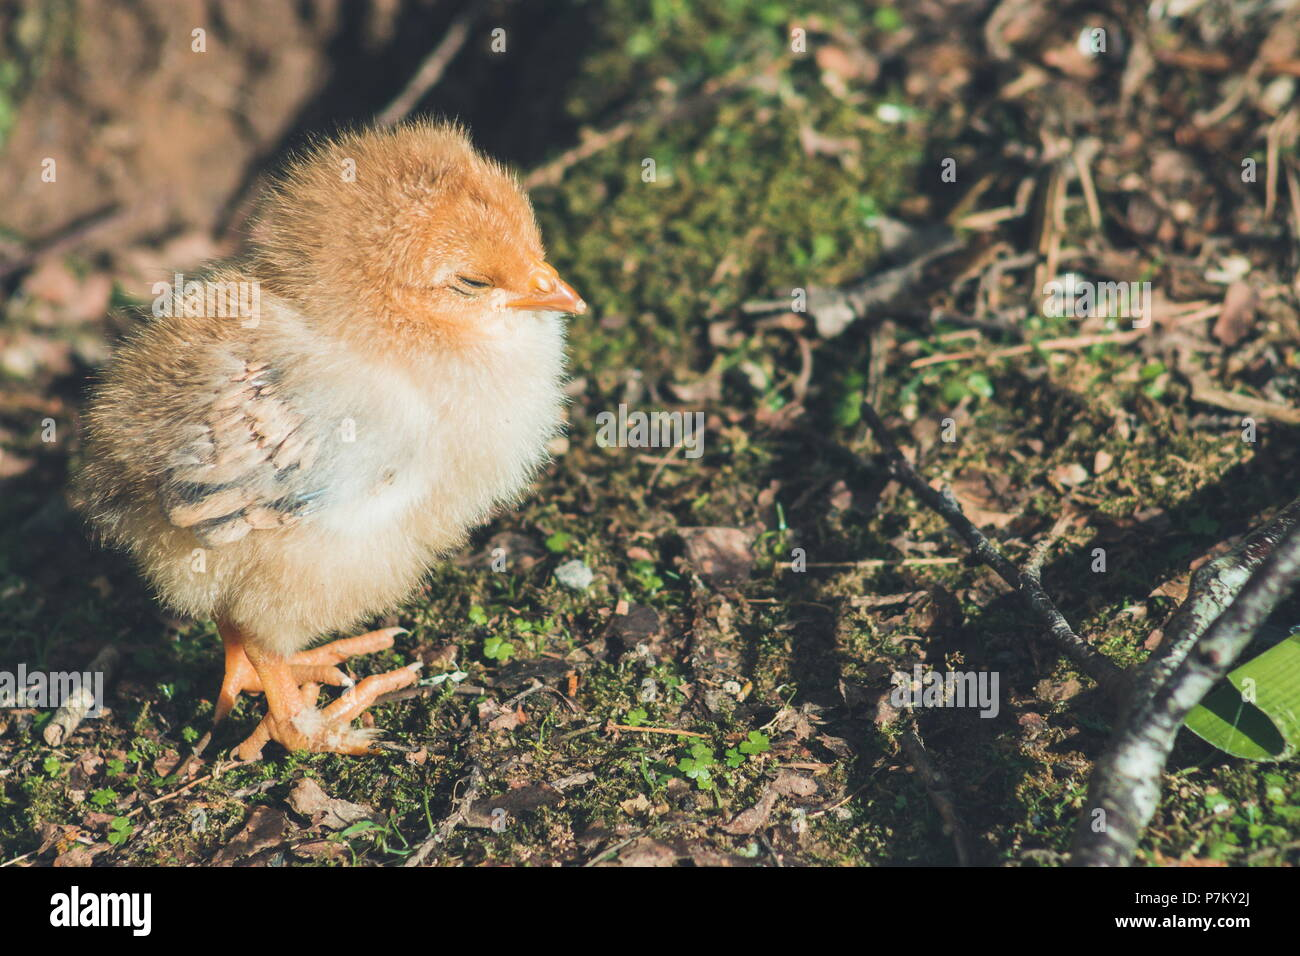 Close up image of a cute little free range baby chicken - Stock Image